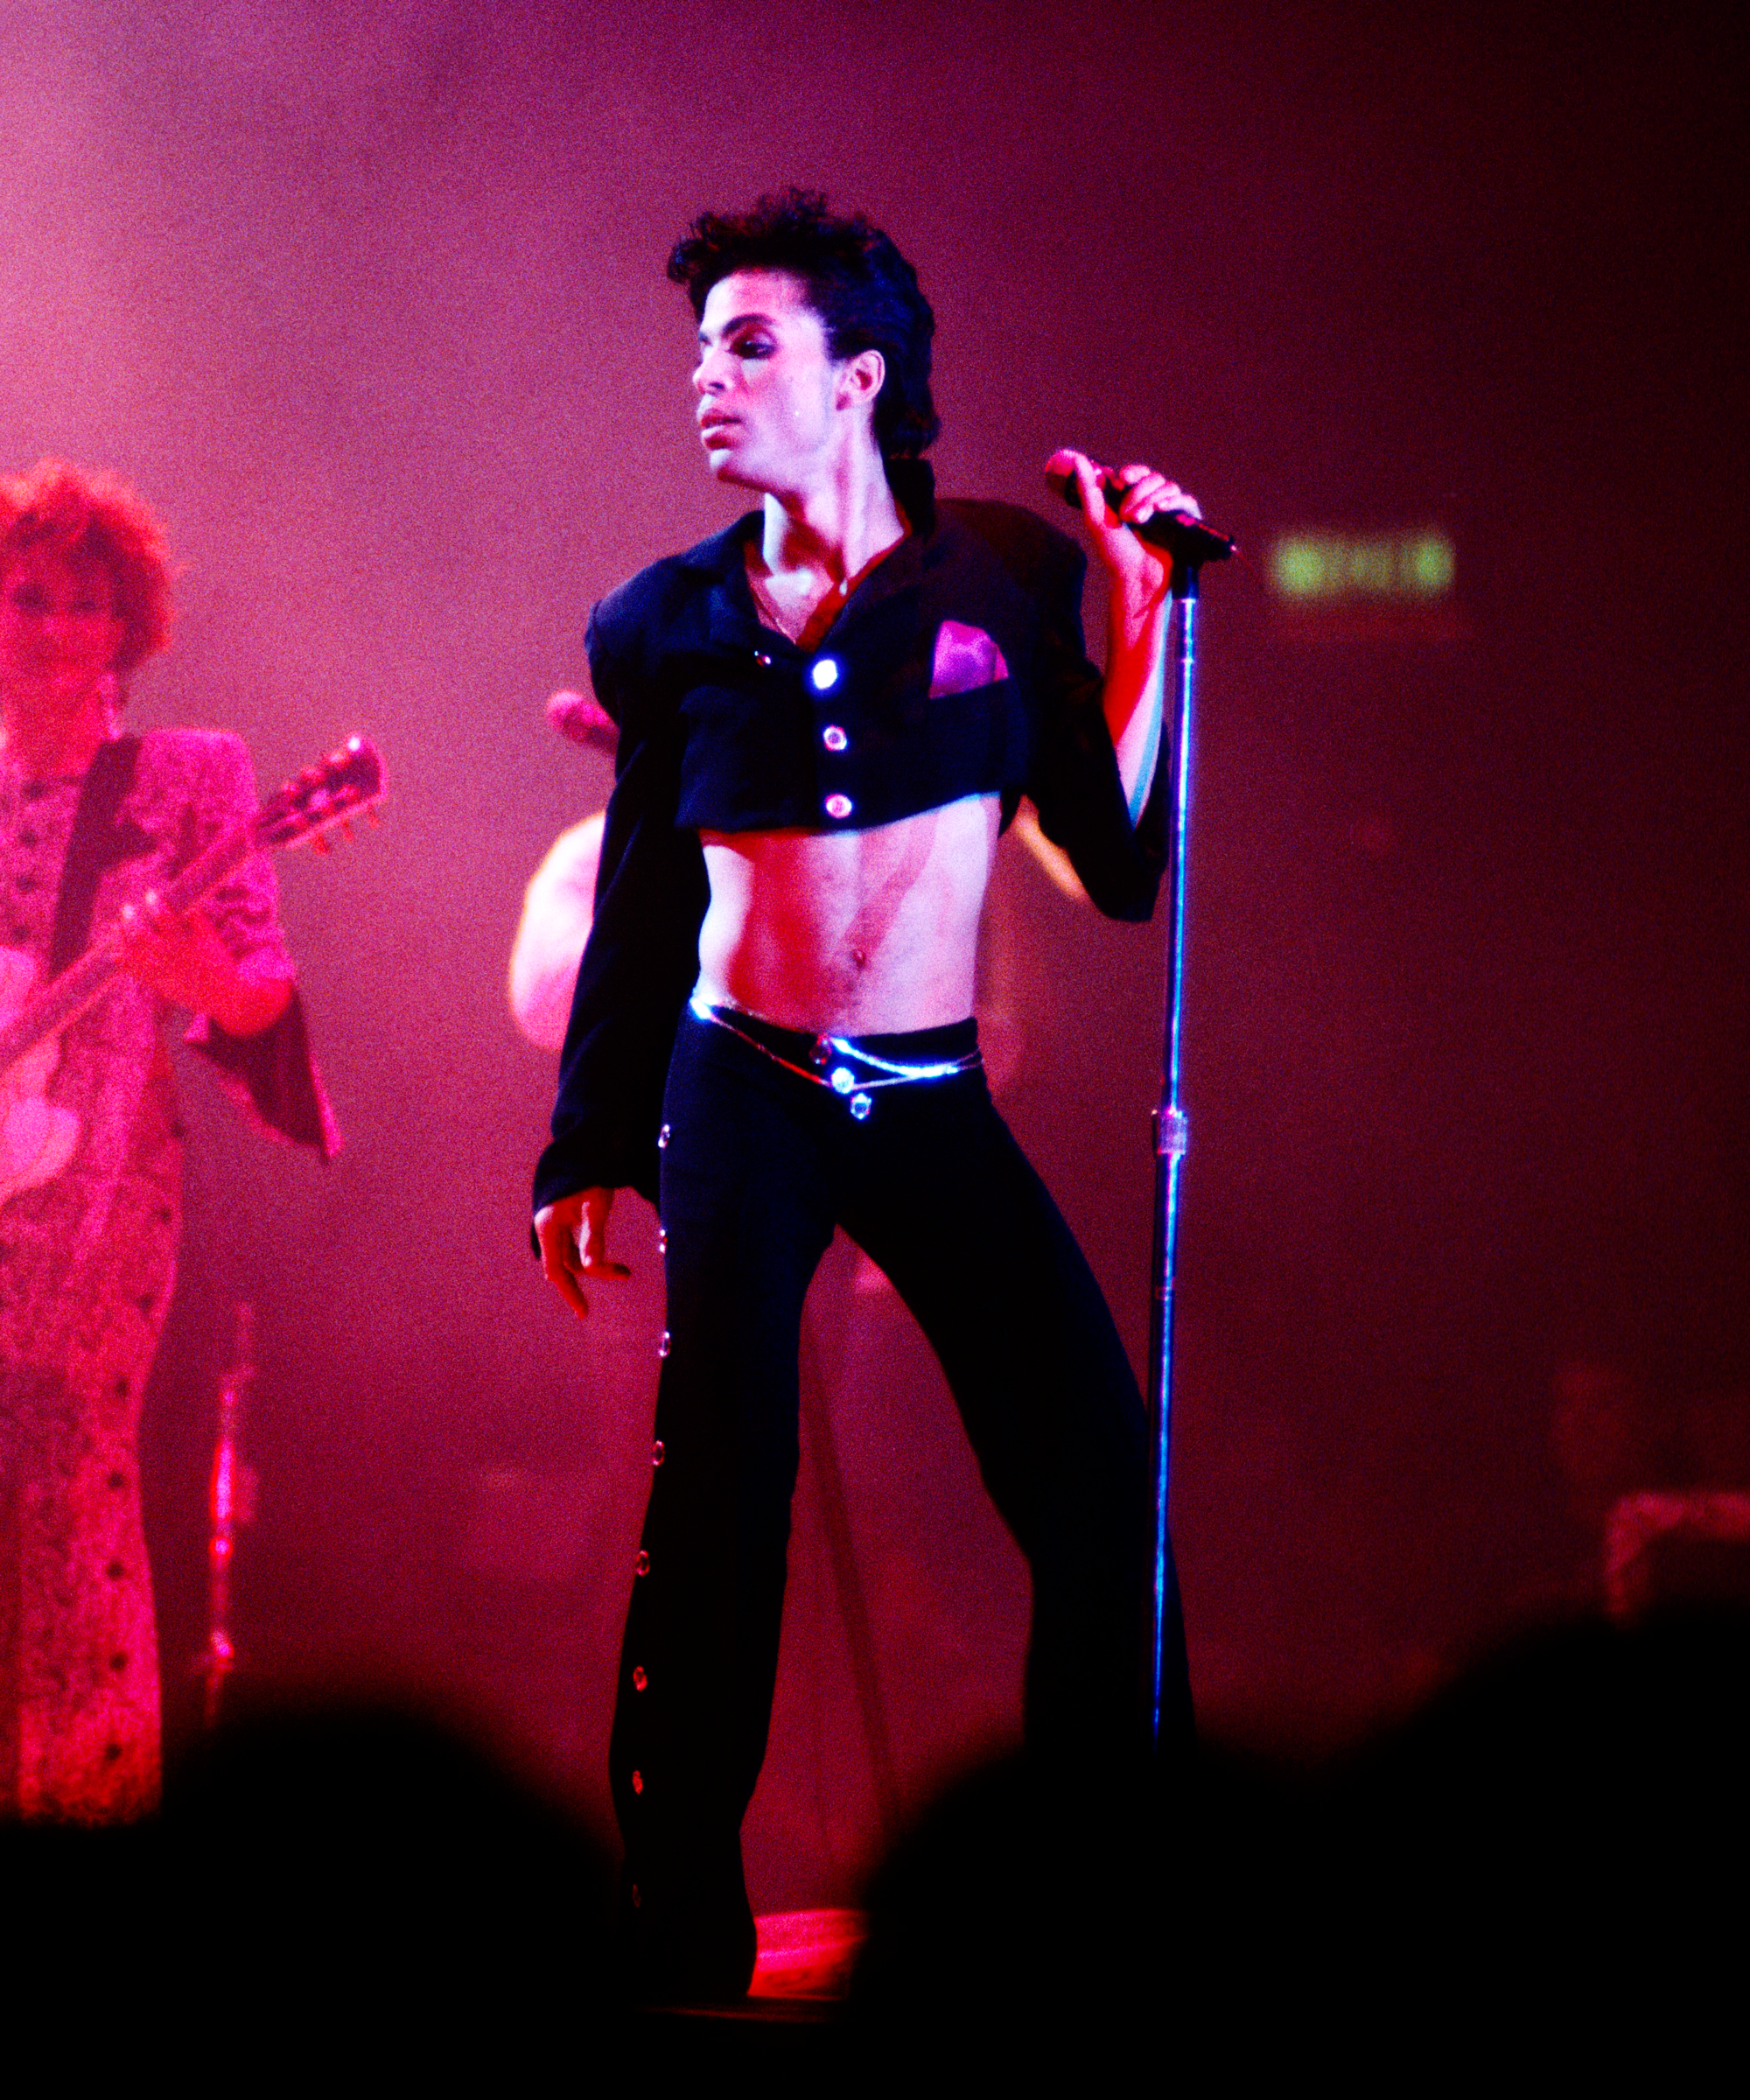 Prince Artist Iconic Fashion Outfits Style